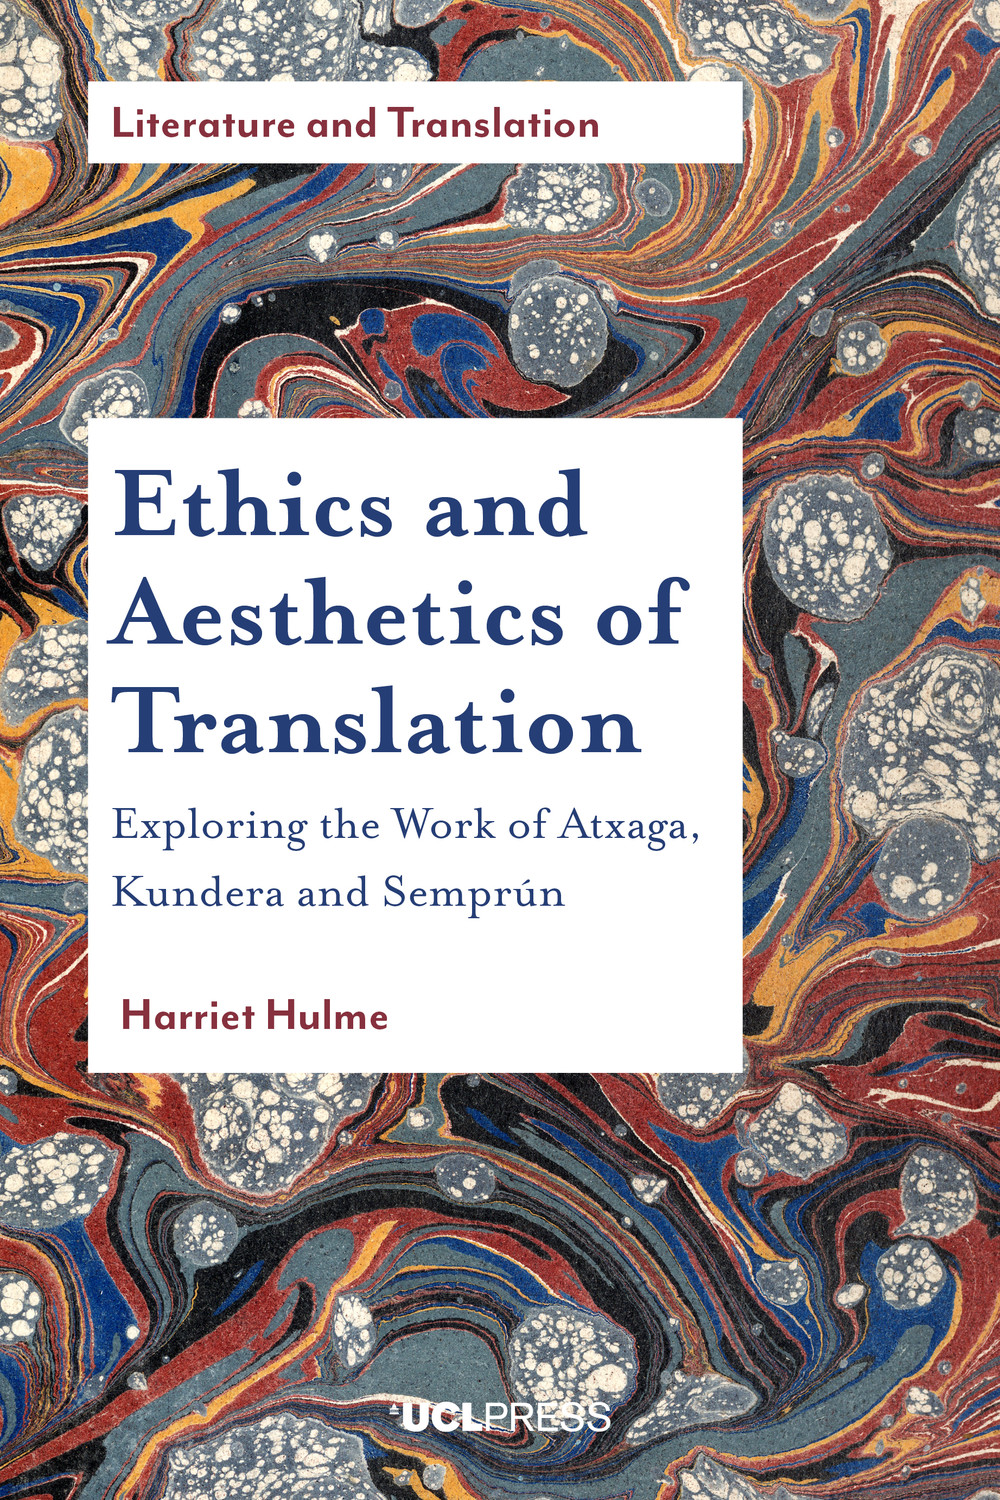 Ethics and Aesthetics of Translation